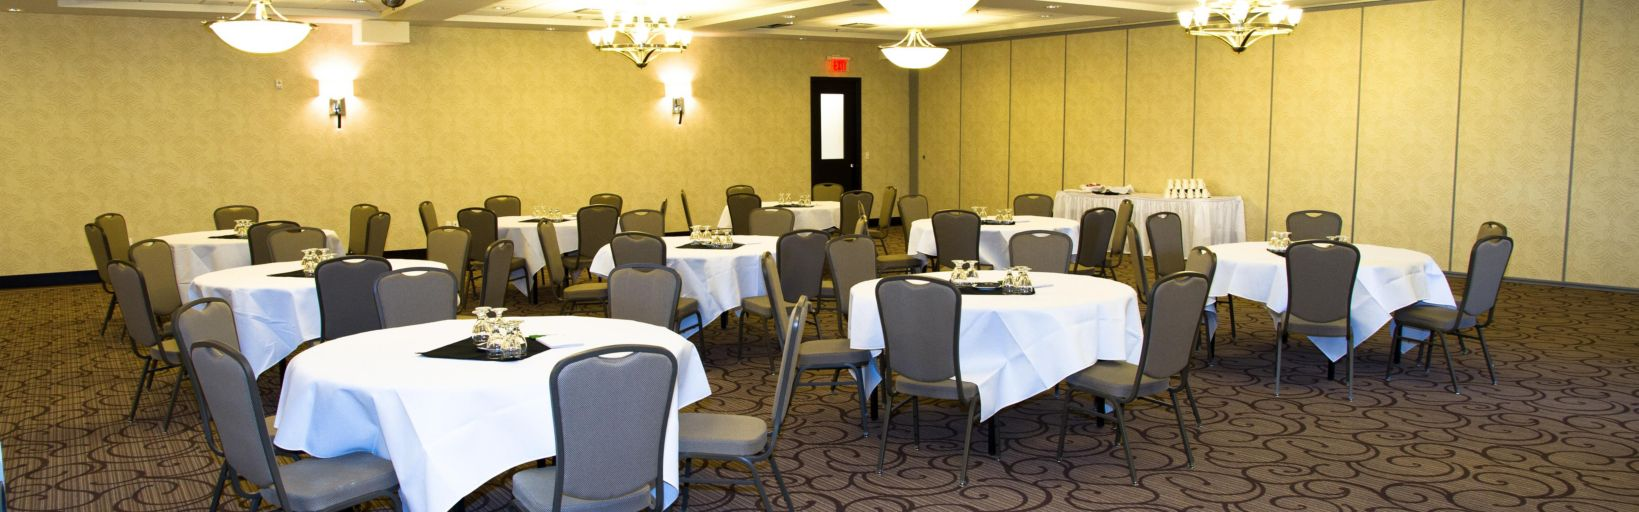 Banquet Room At Holiday Inn Suites Red Deer South